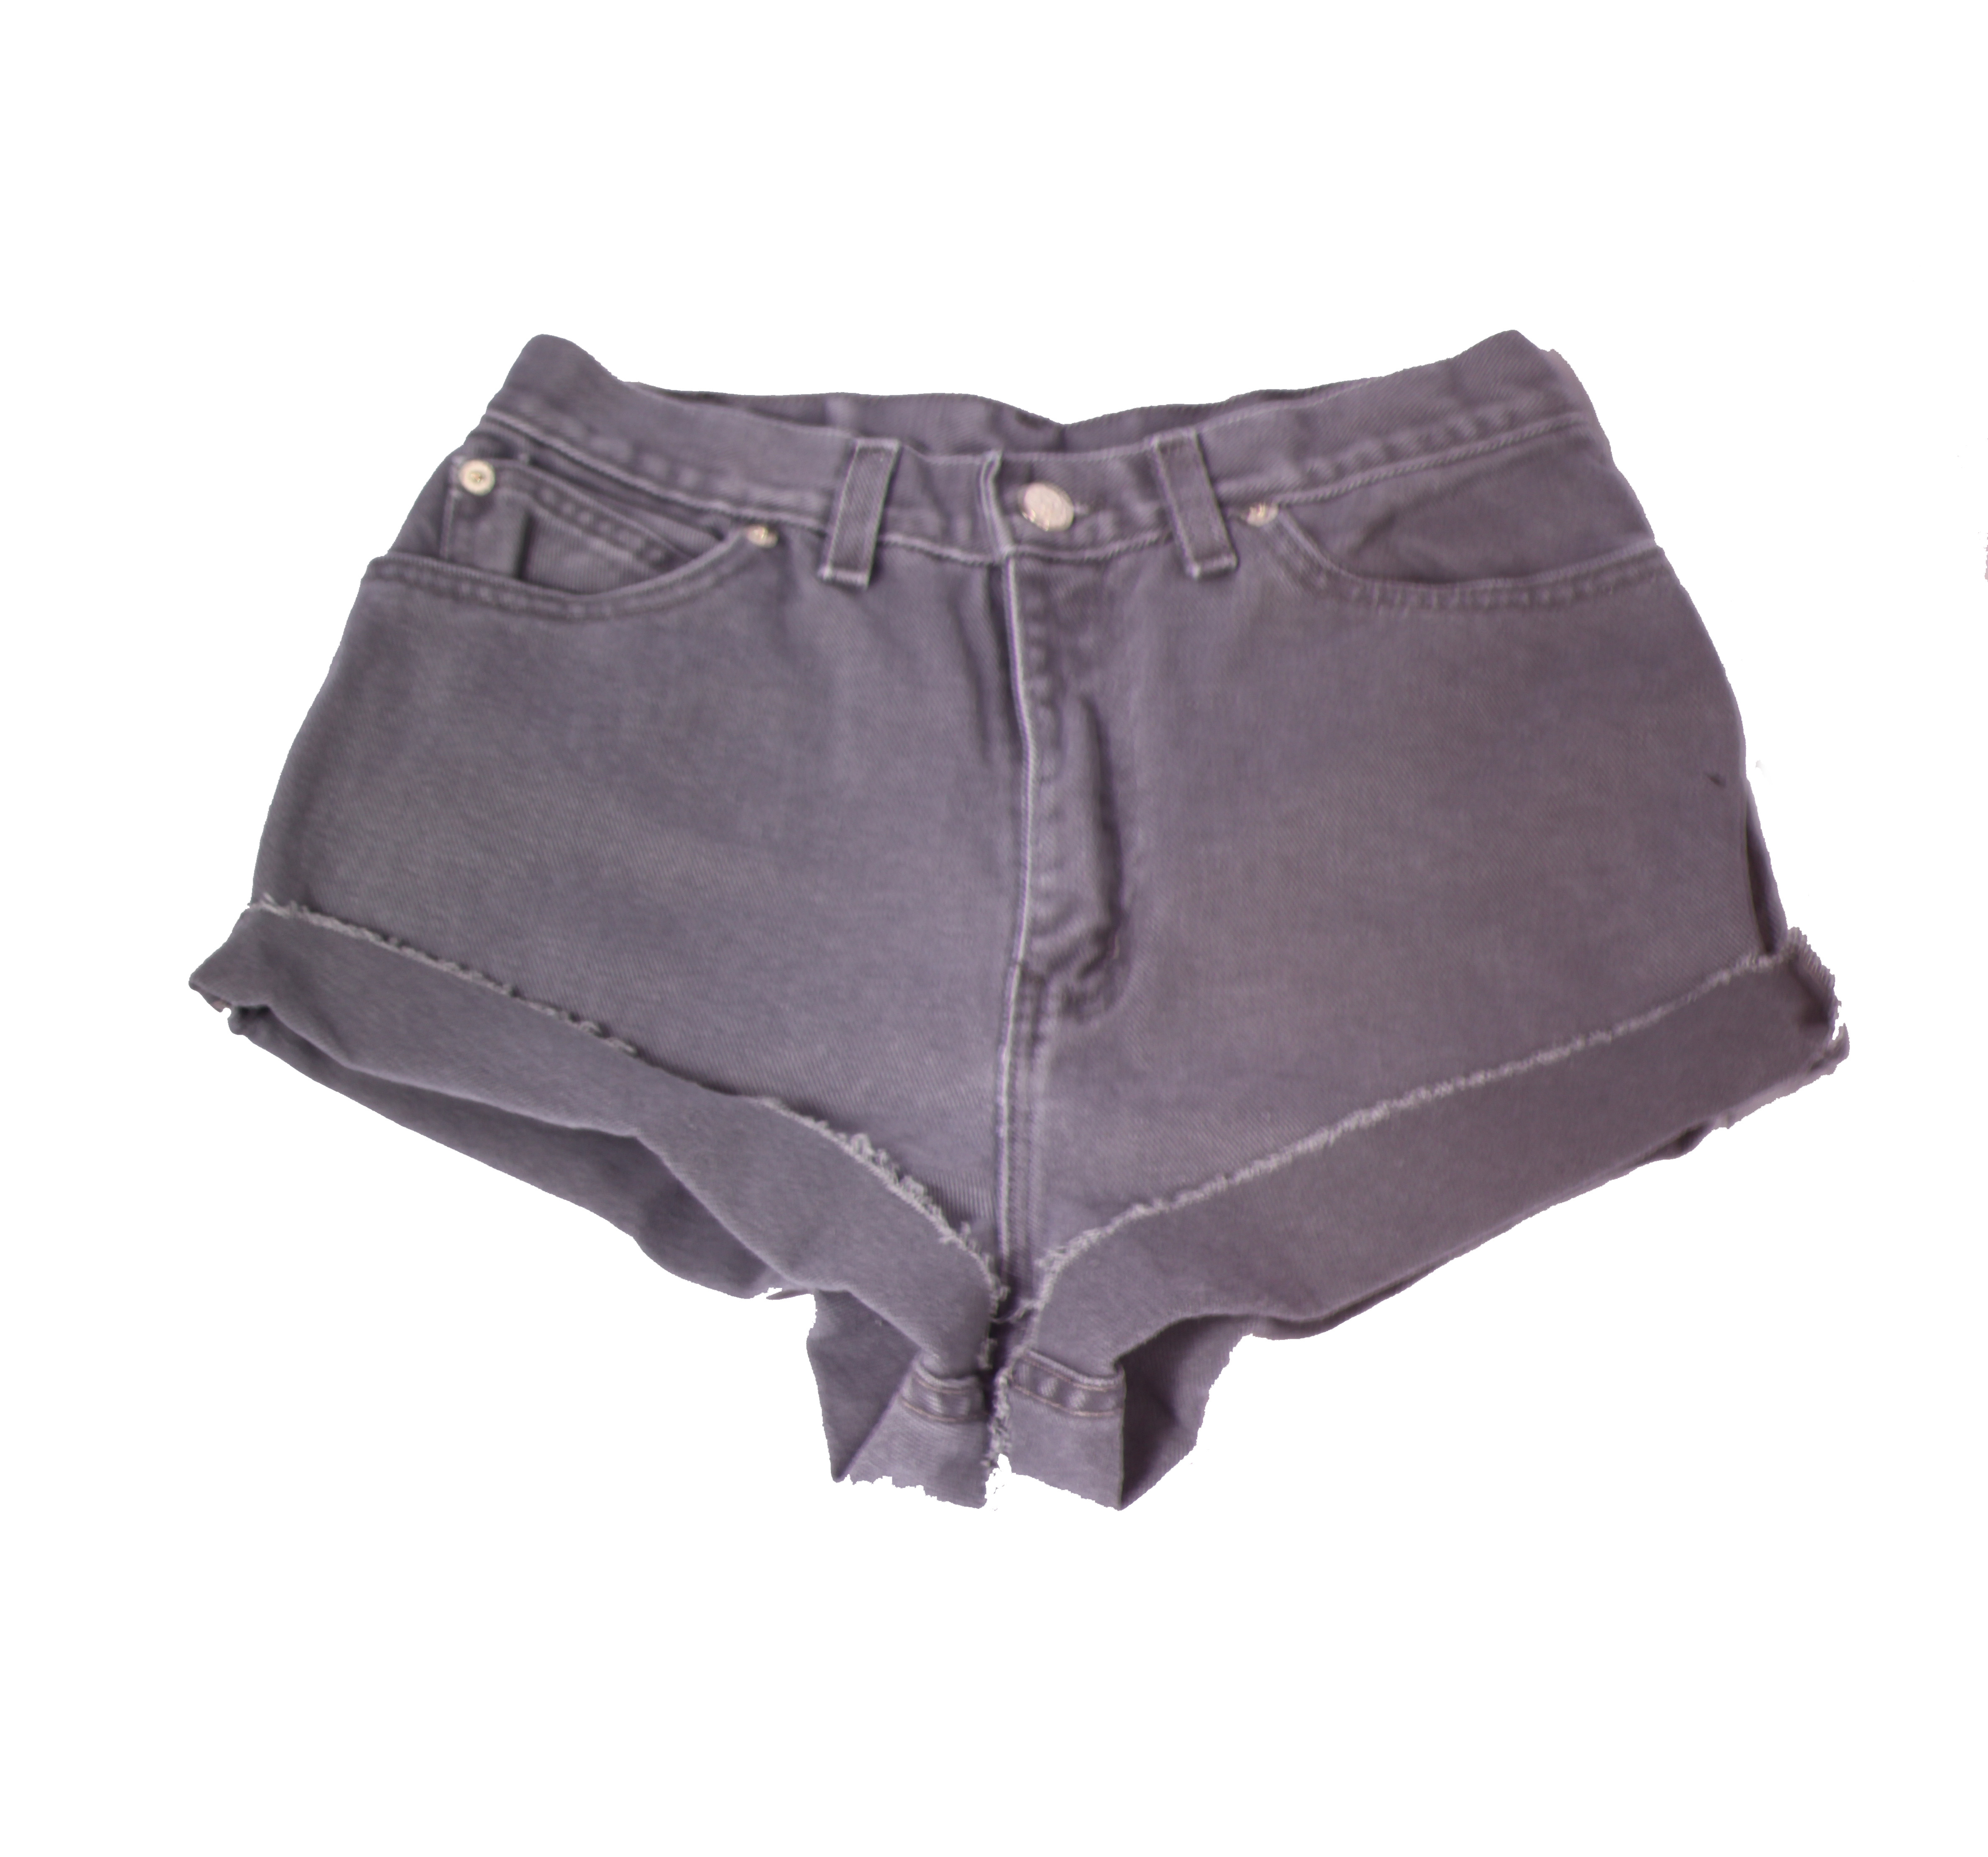 SER&A Clothing   Gray High-waisted Shorts   Online Store Powered ...